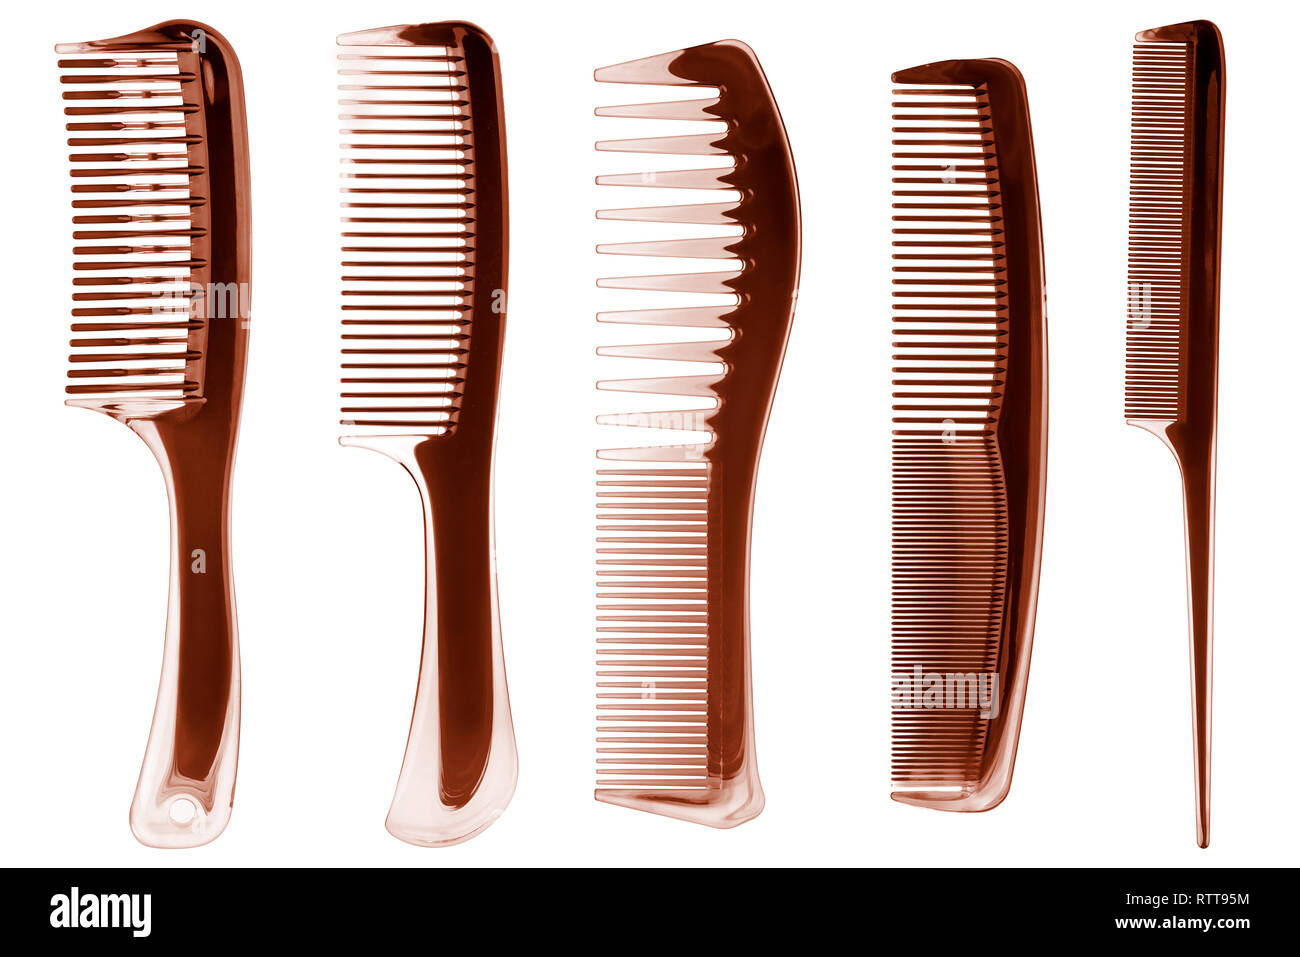 Hair combs on white background. Five different brown plastic combs for hair styling isolated, clipping paths included - Stock Image